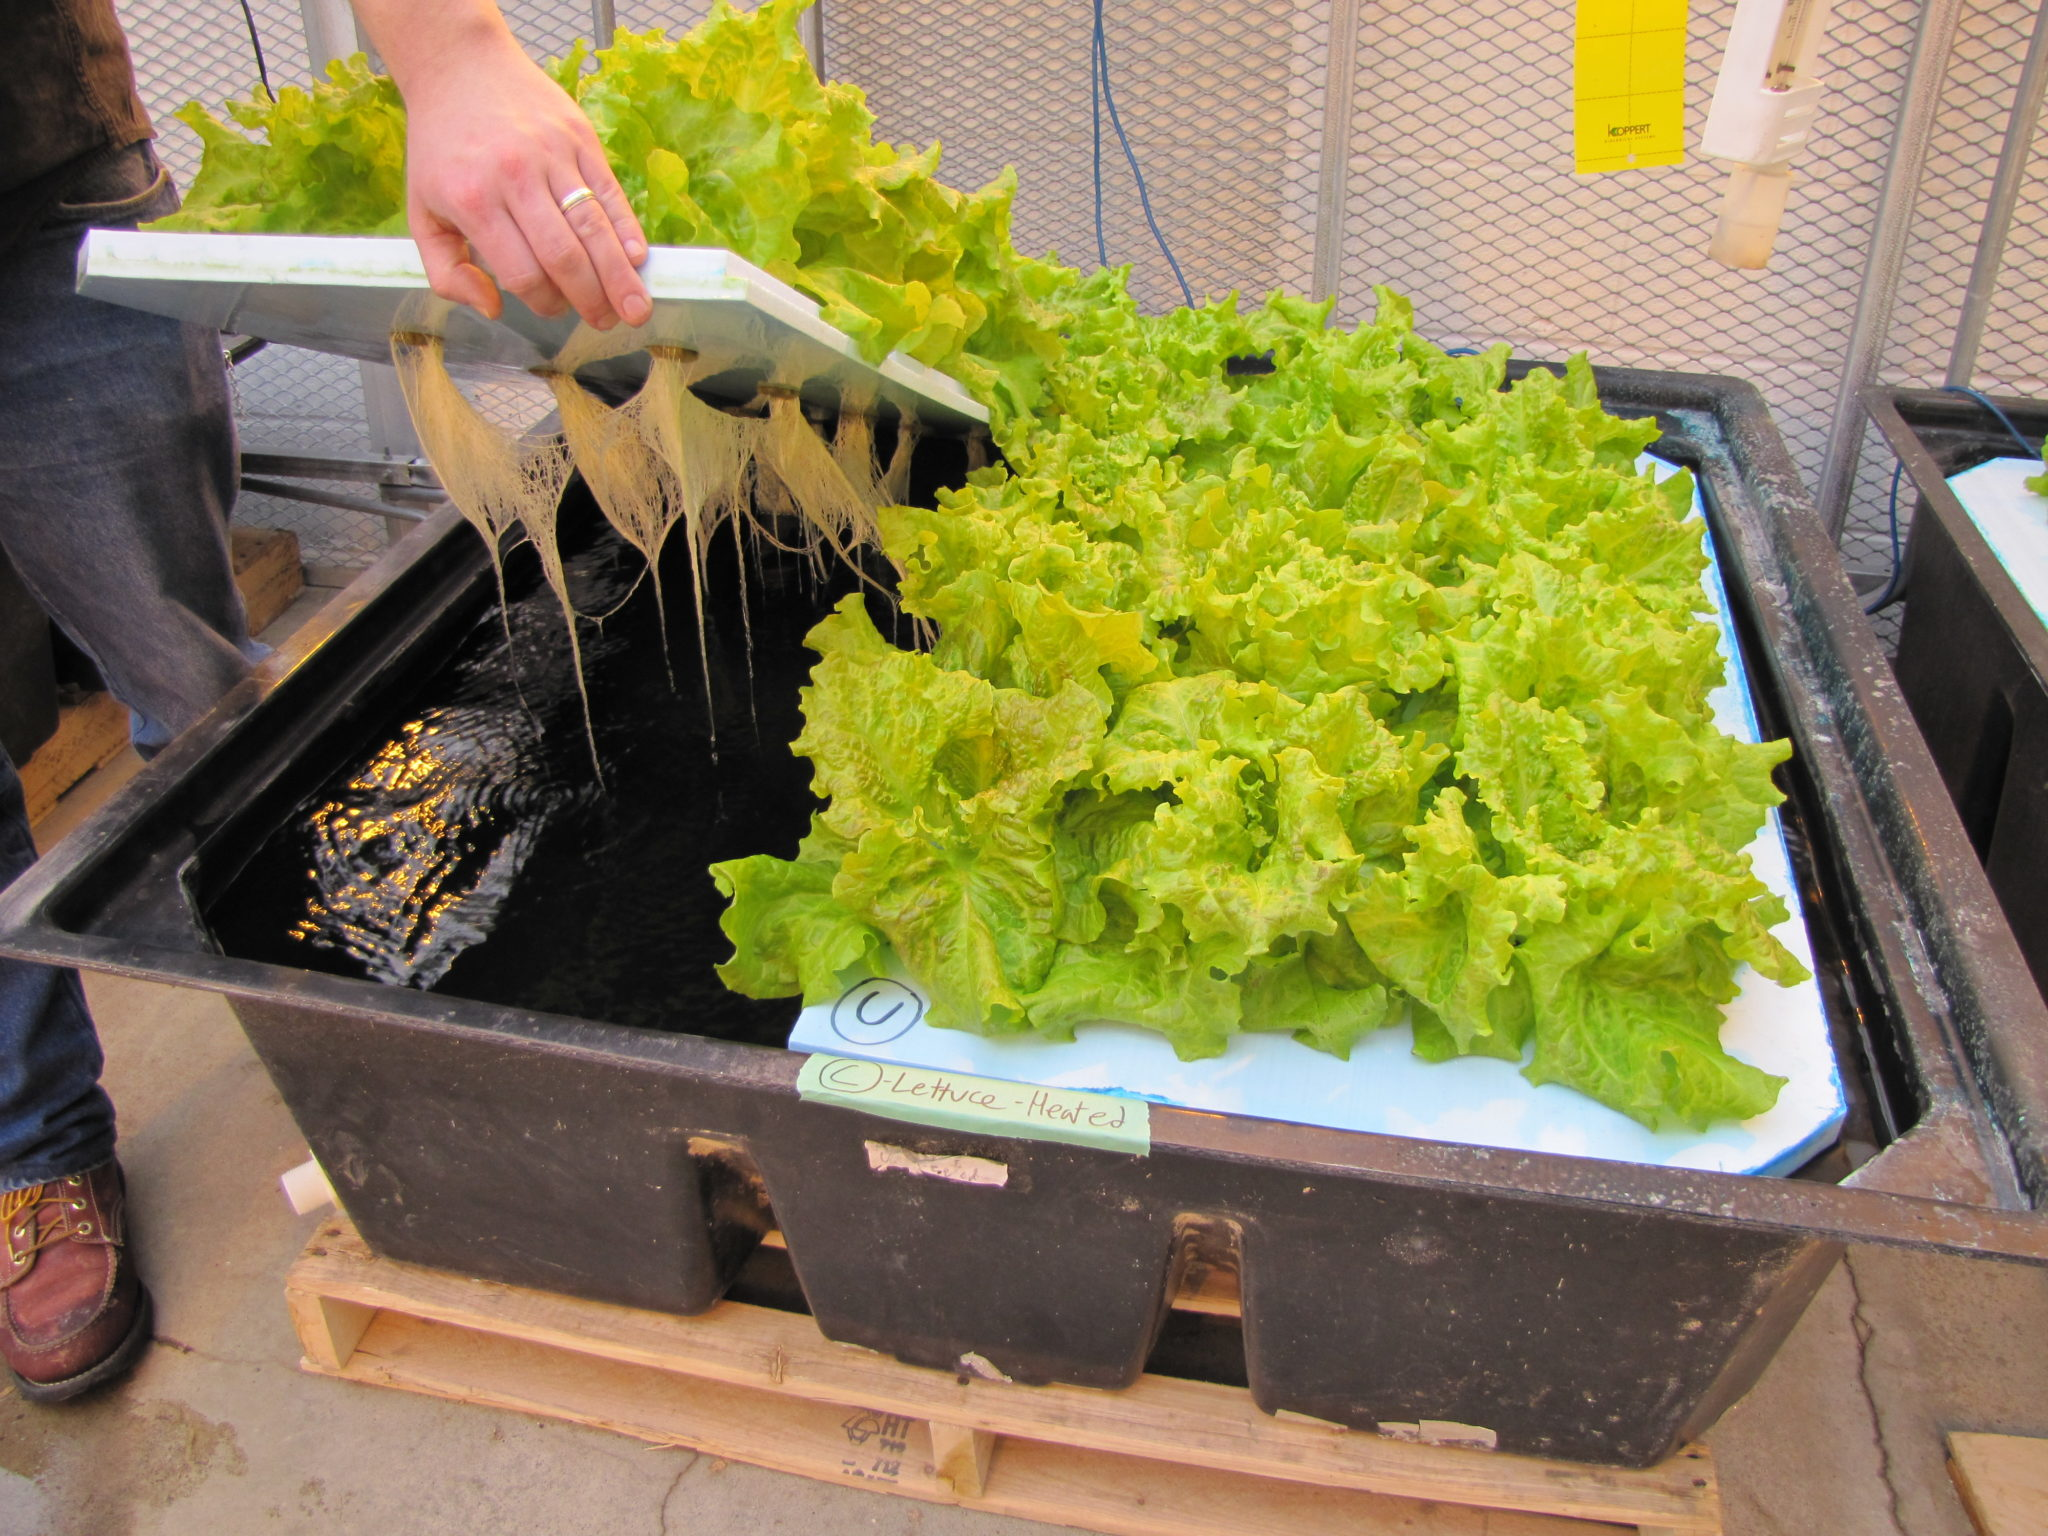 How to get started with hydroponics | Hello Homestead